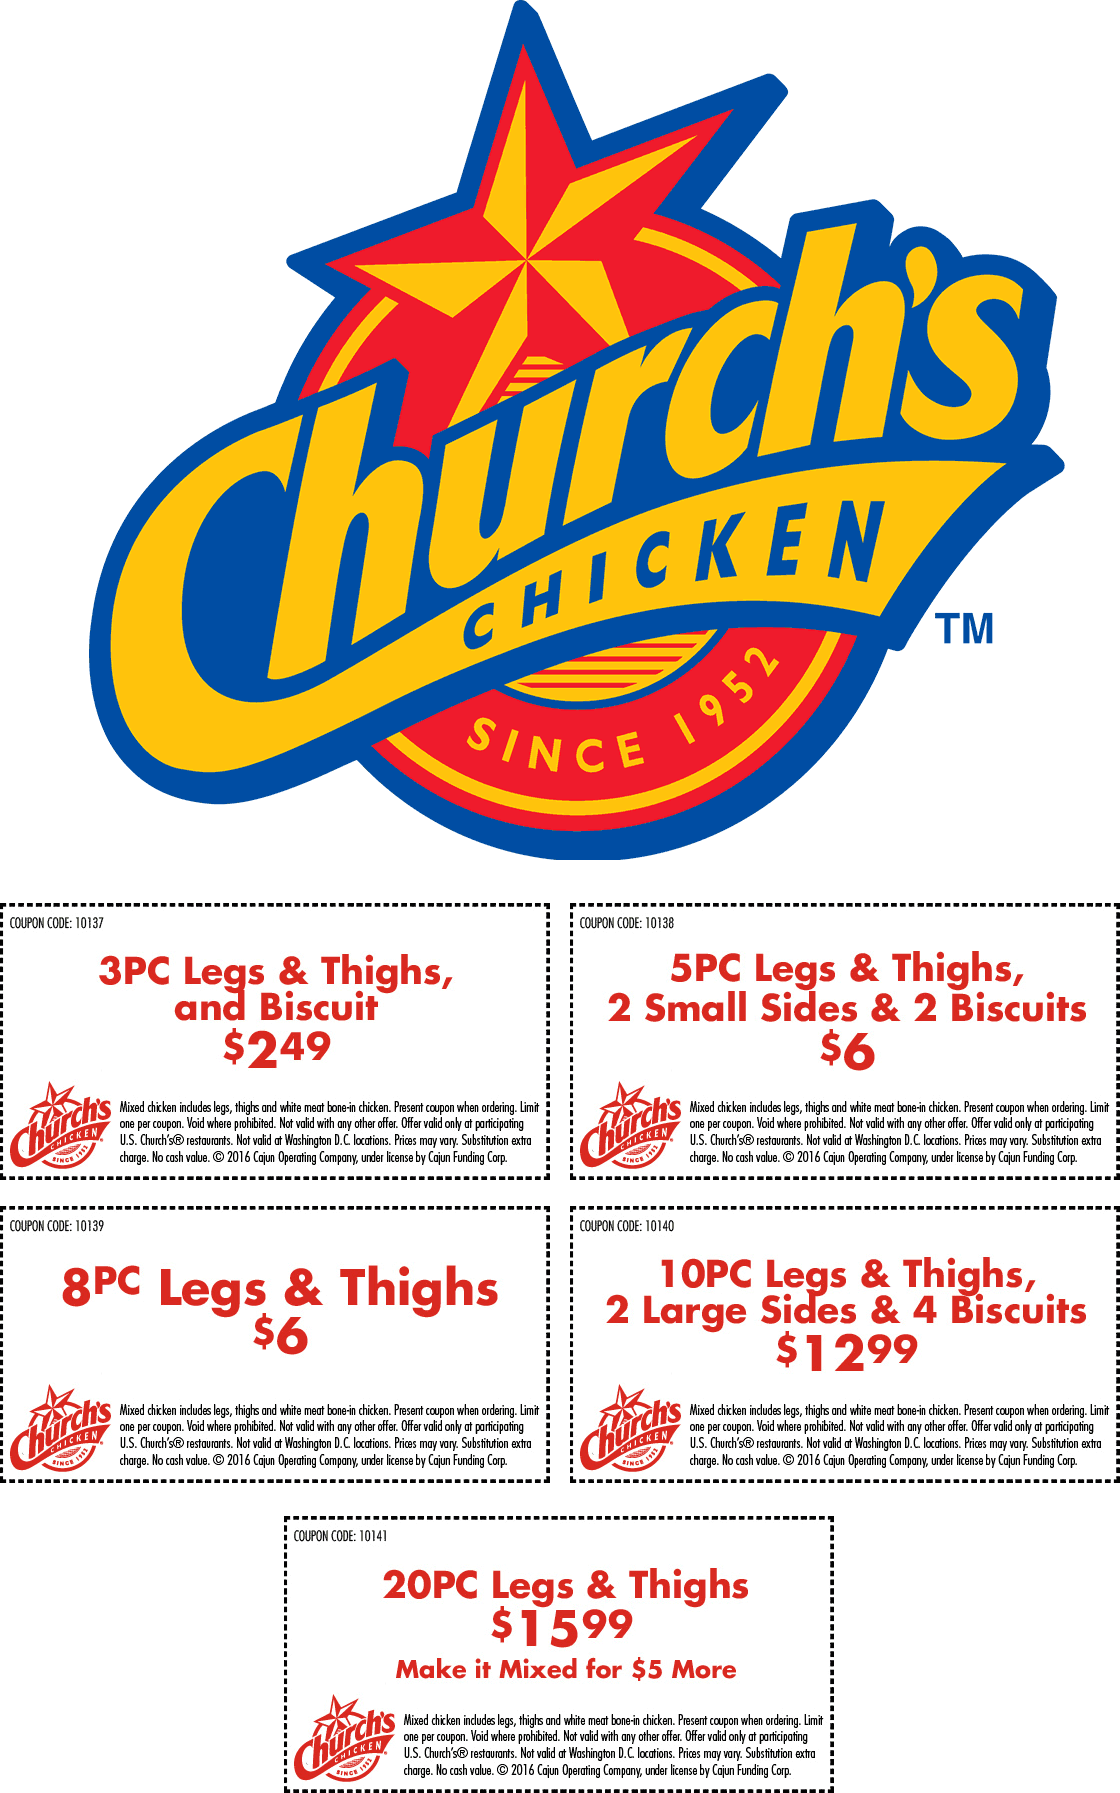 Churchs Chicken Coupon April 2018 5pc + 2 sides + 2 biscuits = $6 & more at Churchs Chicken